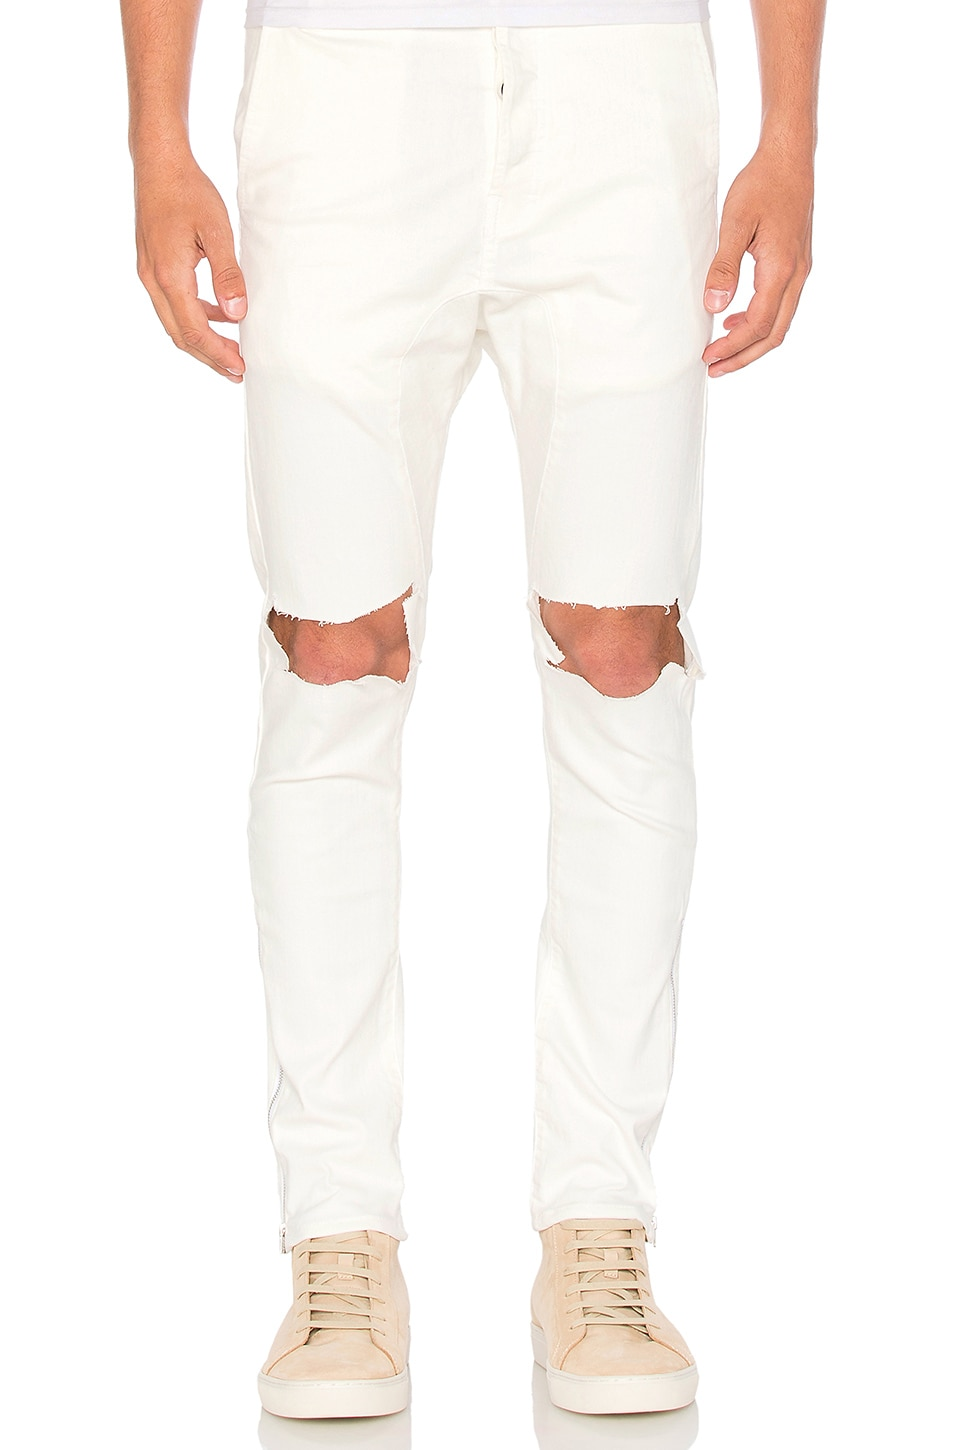 Low Crotch Ripped Skinny Jean by Daniel Patrick